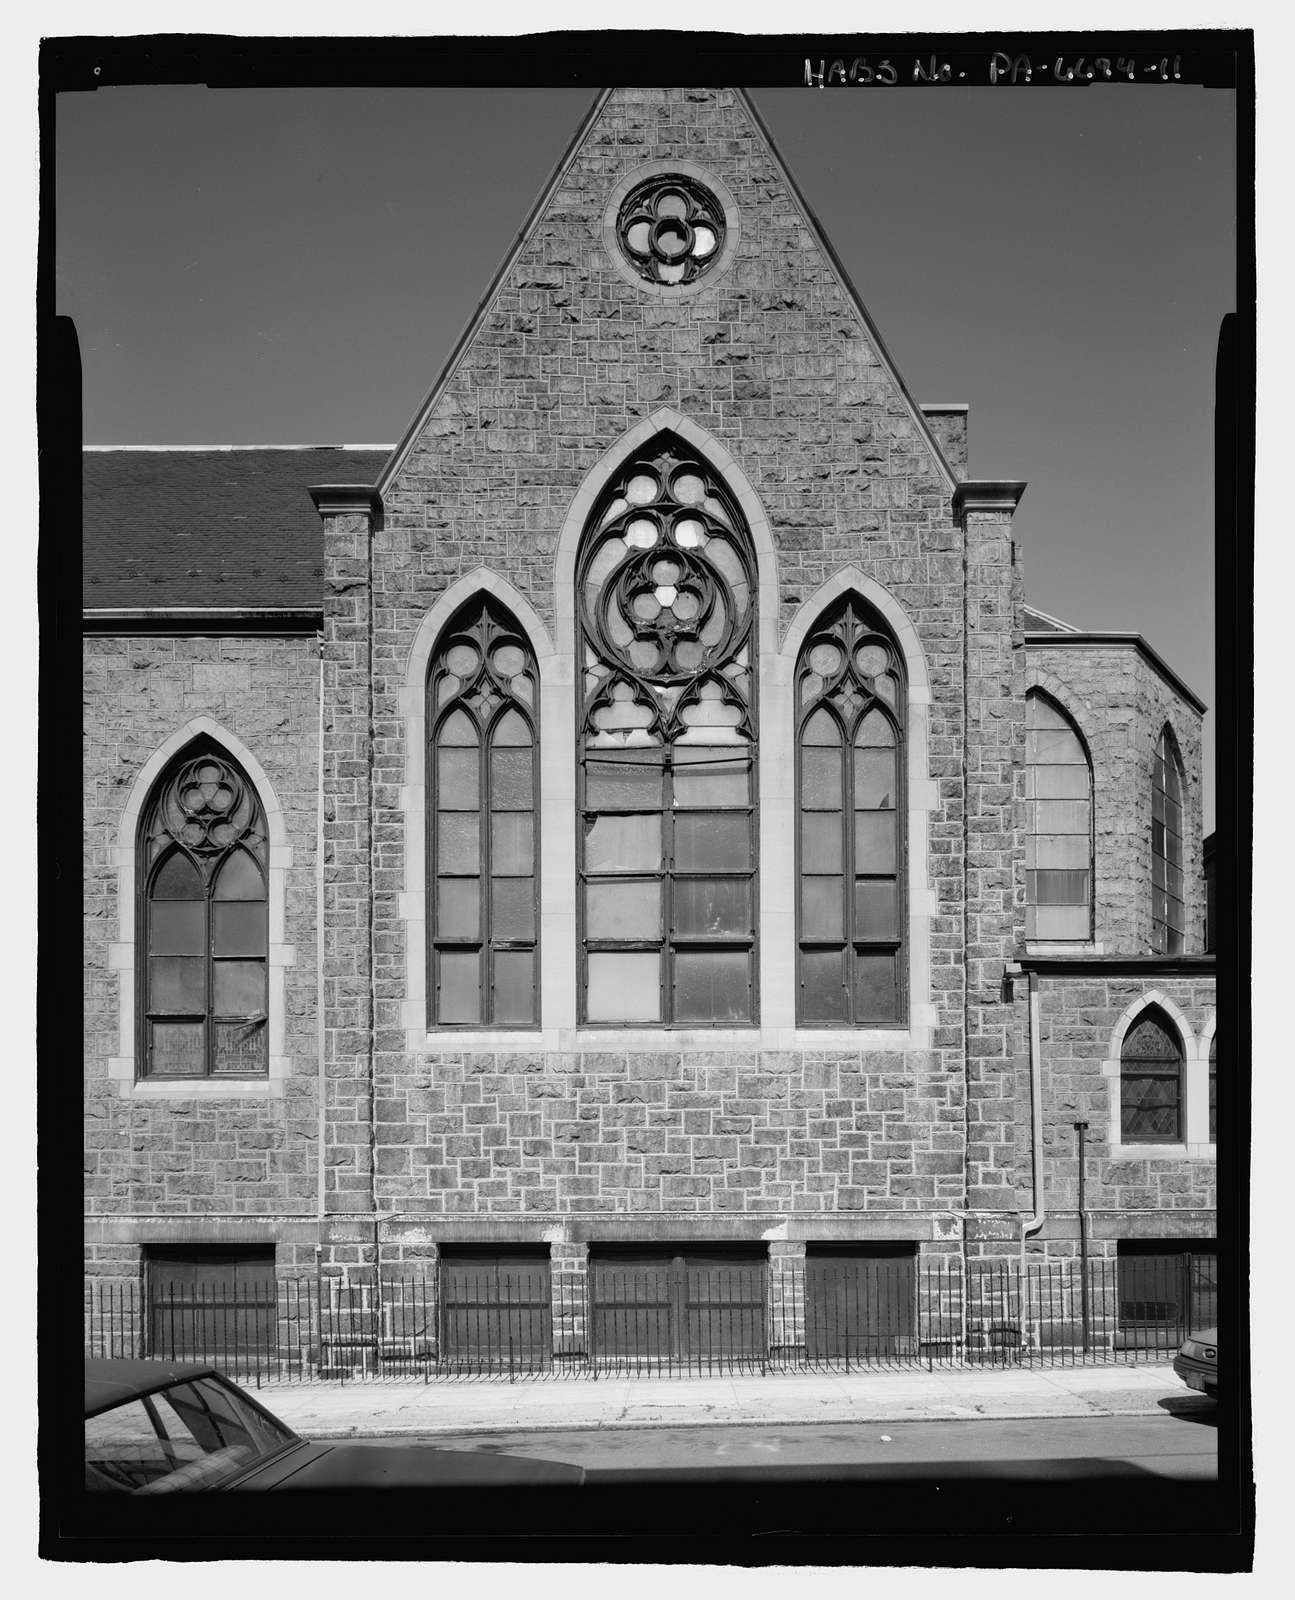 Acts of the Apostles Church in Jesus Christ, 1400-28 North Twenty-eighth Street, northwest corner of North Twenty-eighth & Master Streets, Philadelphia, Philadelphia County, PA